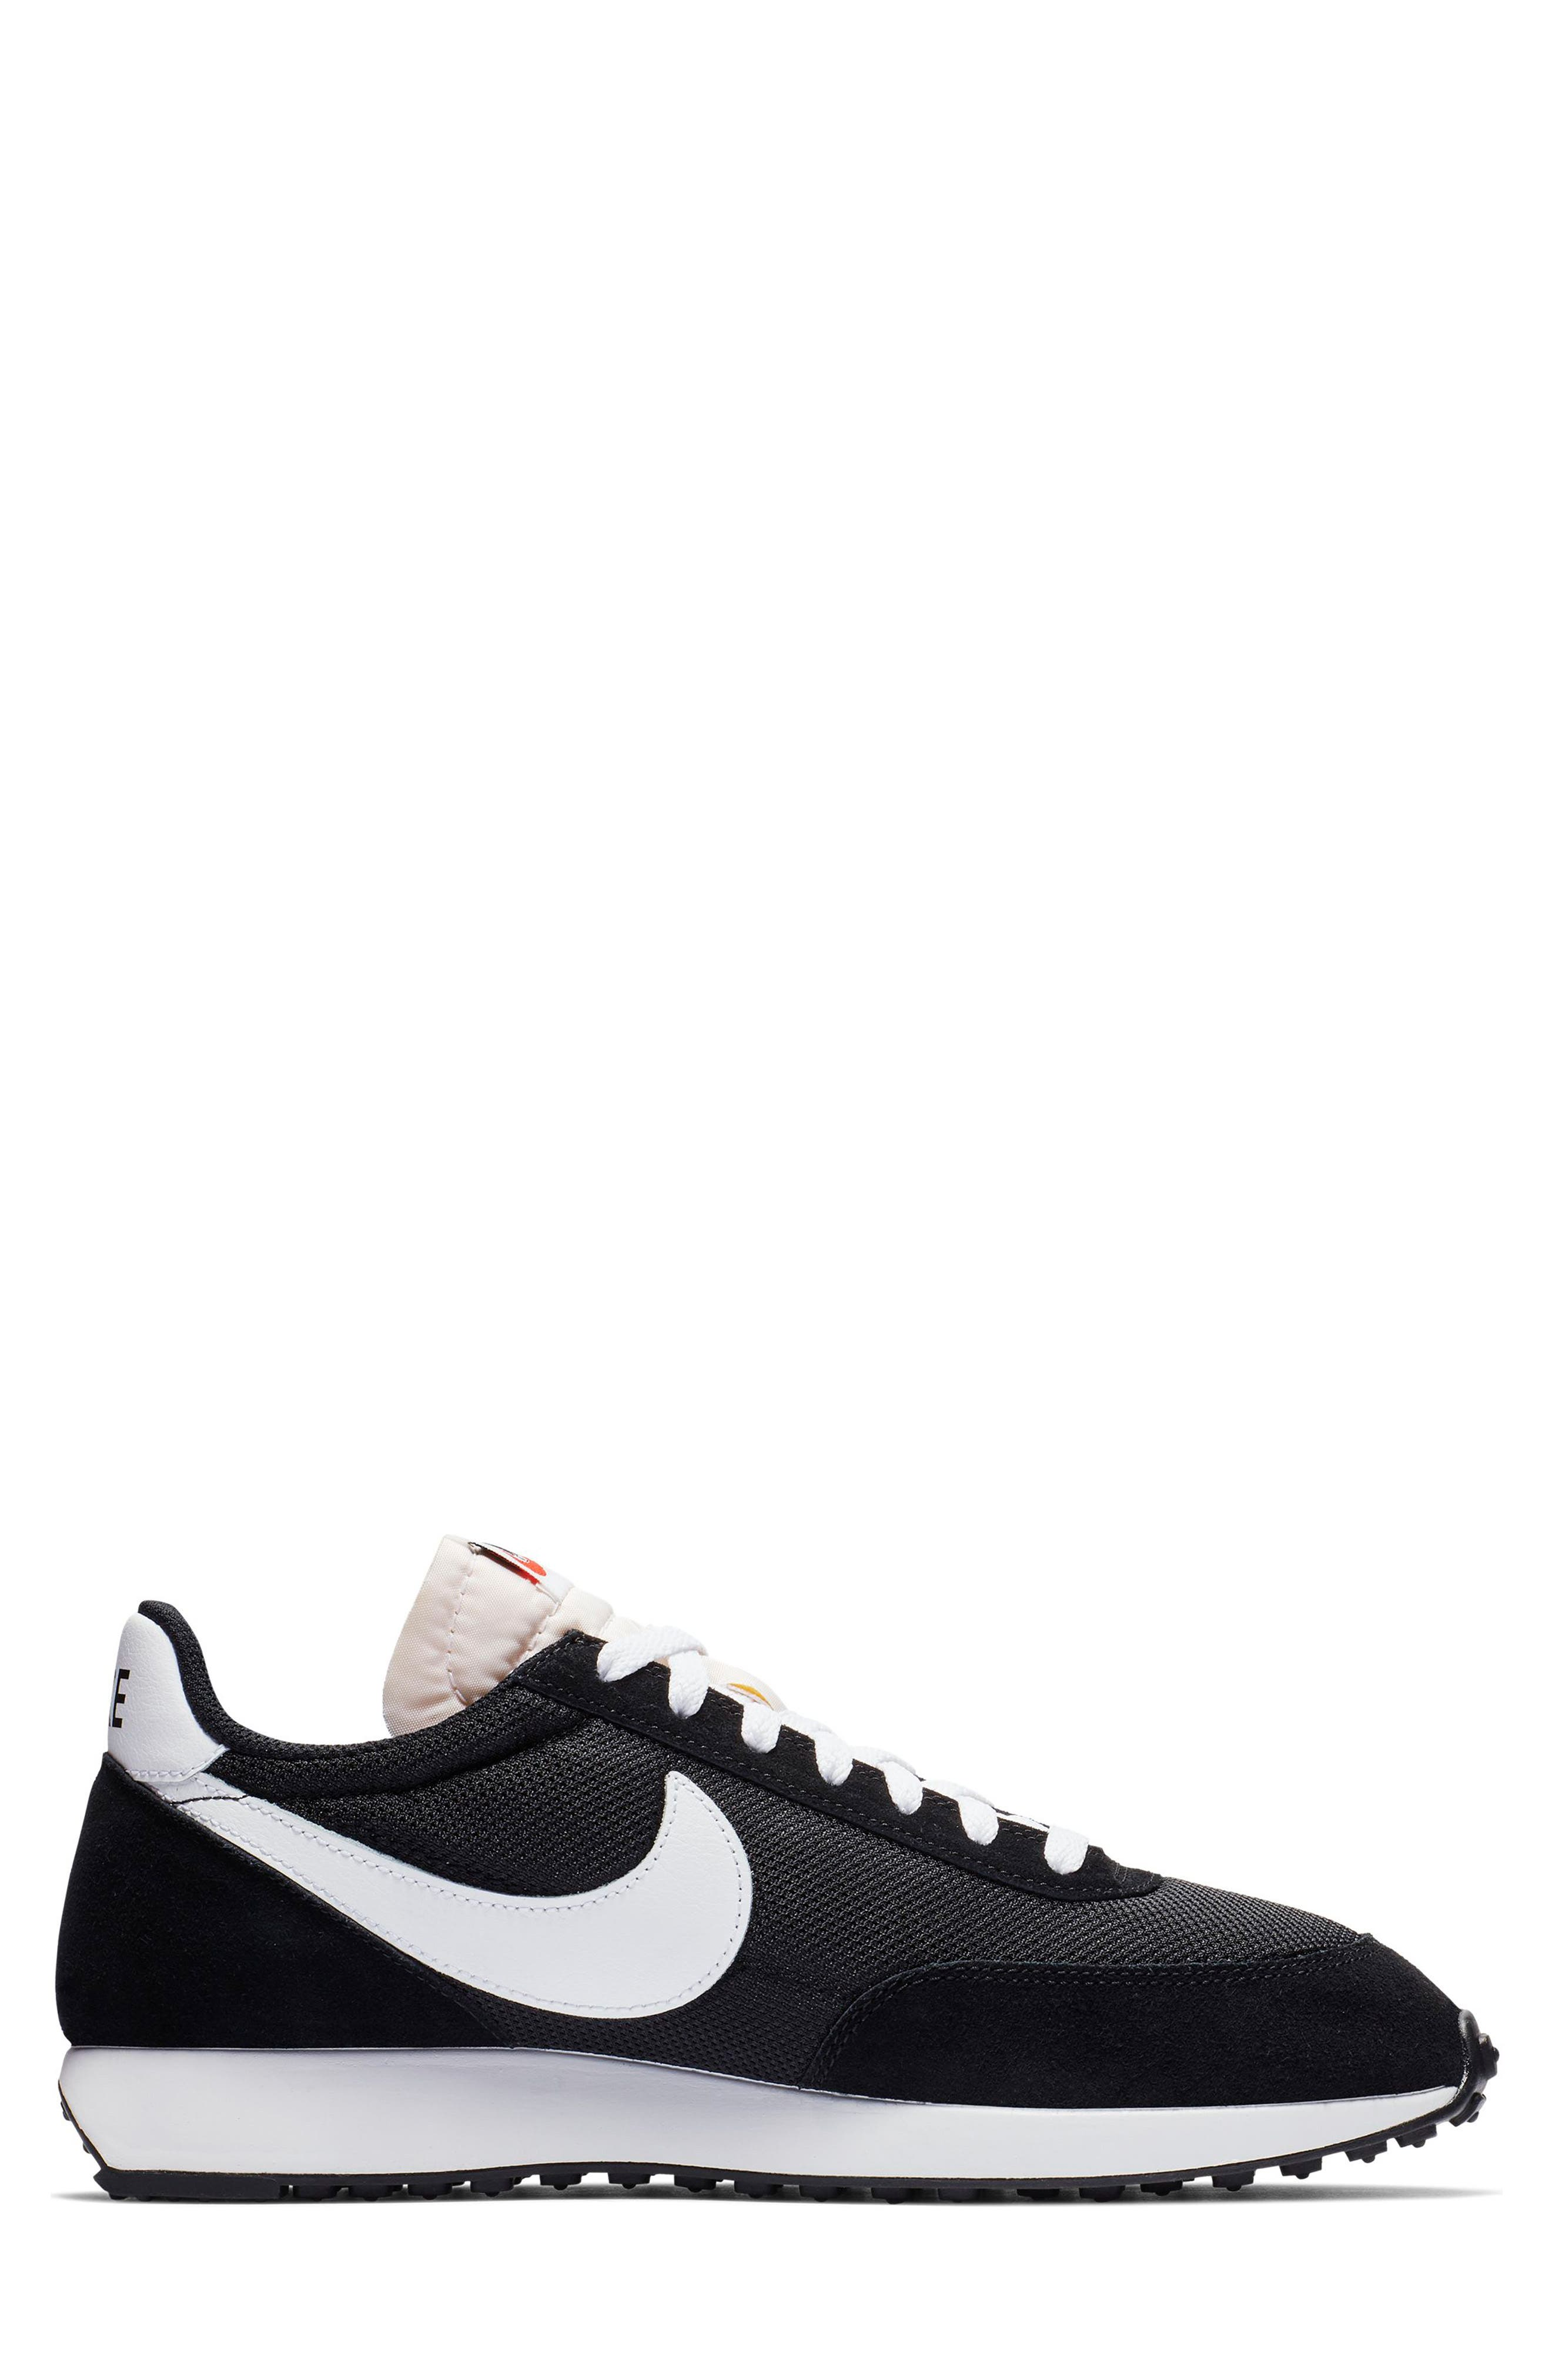 NIKE, 'Air Tailwind' Running Shoe, Alternate thumbnail 2, color, BLACK/ WHITE/ TEAM ORANGE